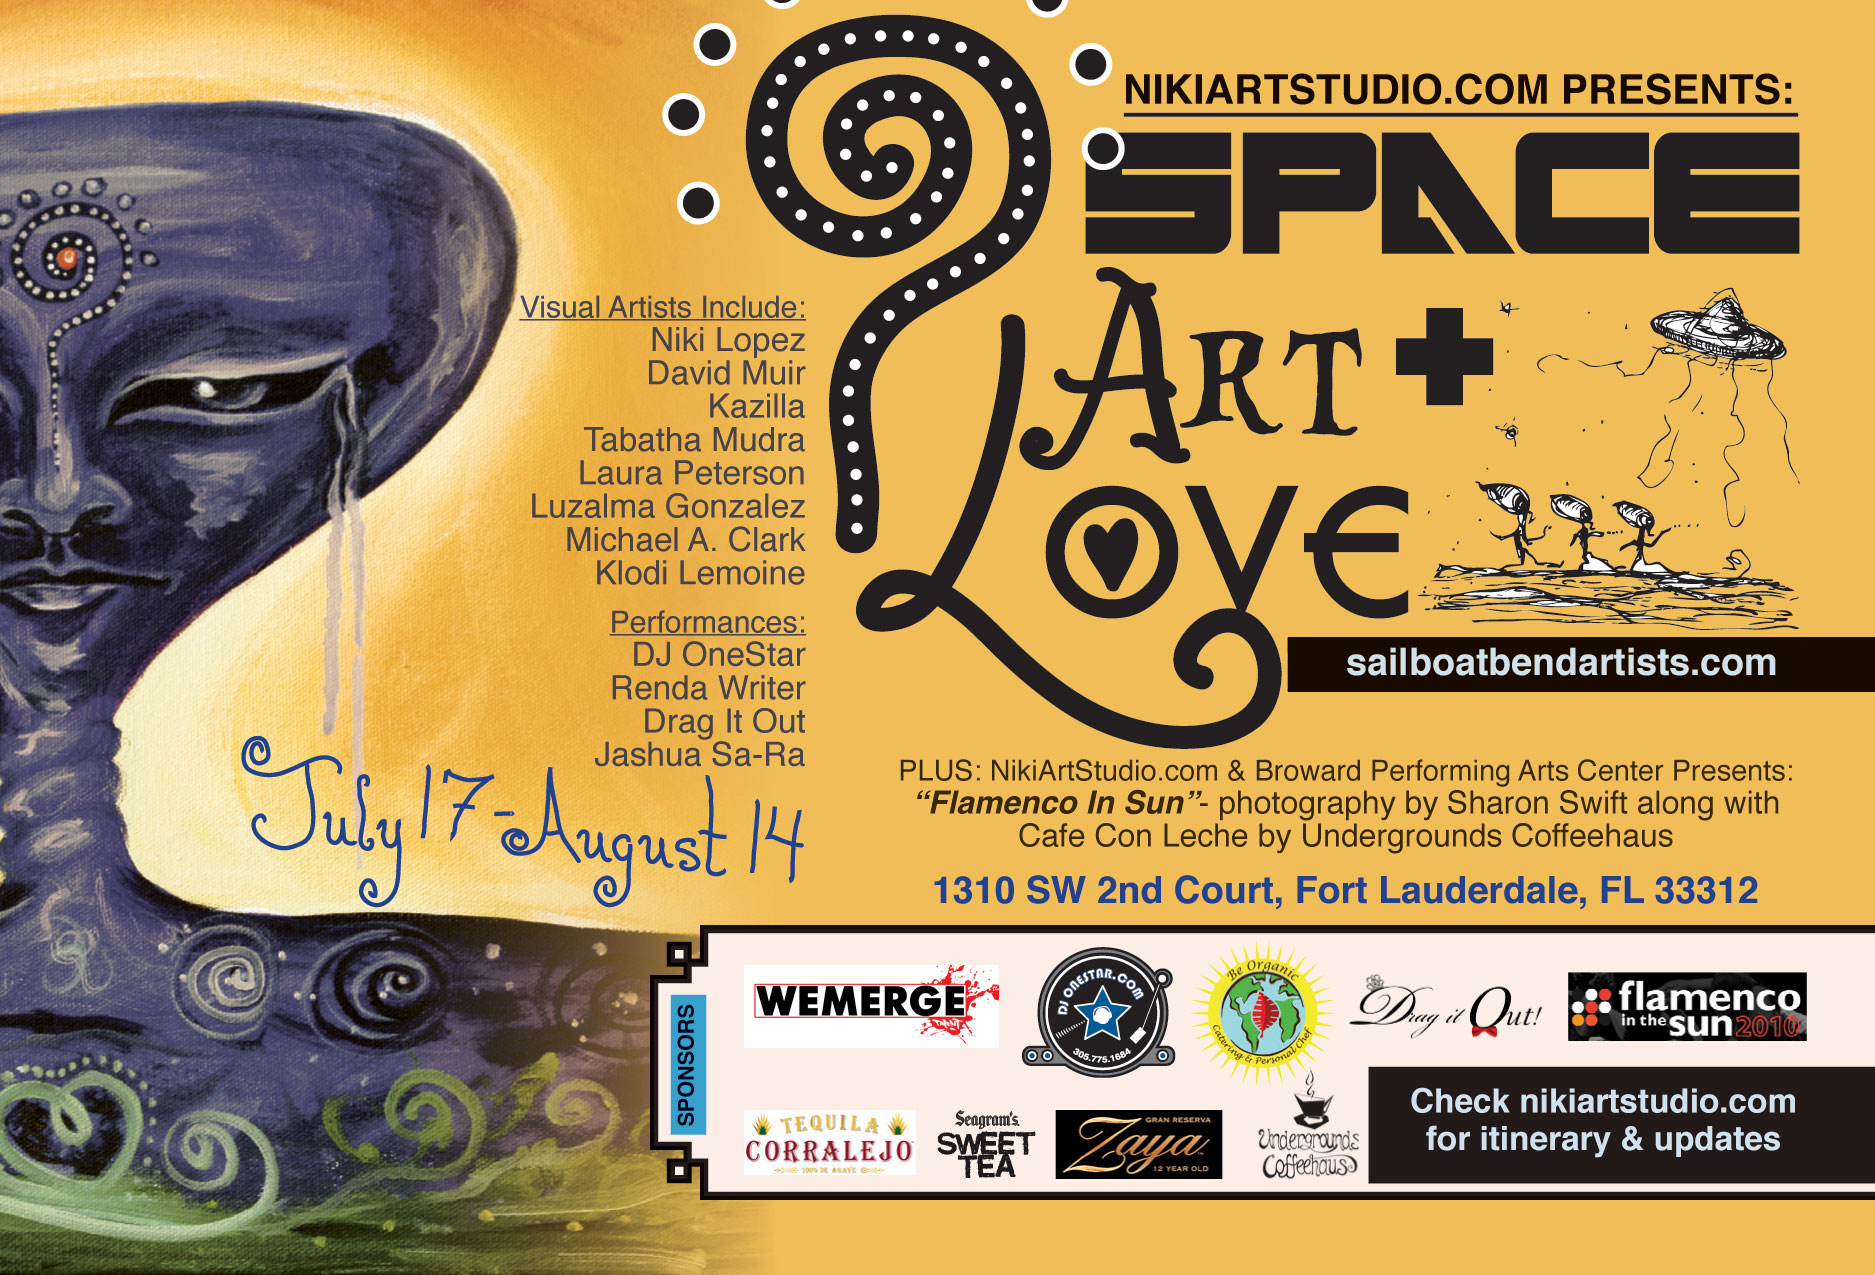 Next Art Show by Niki Lopez and Niki Art Studio: Space, Art + Love- July 17-August 14 2010